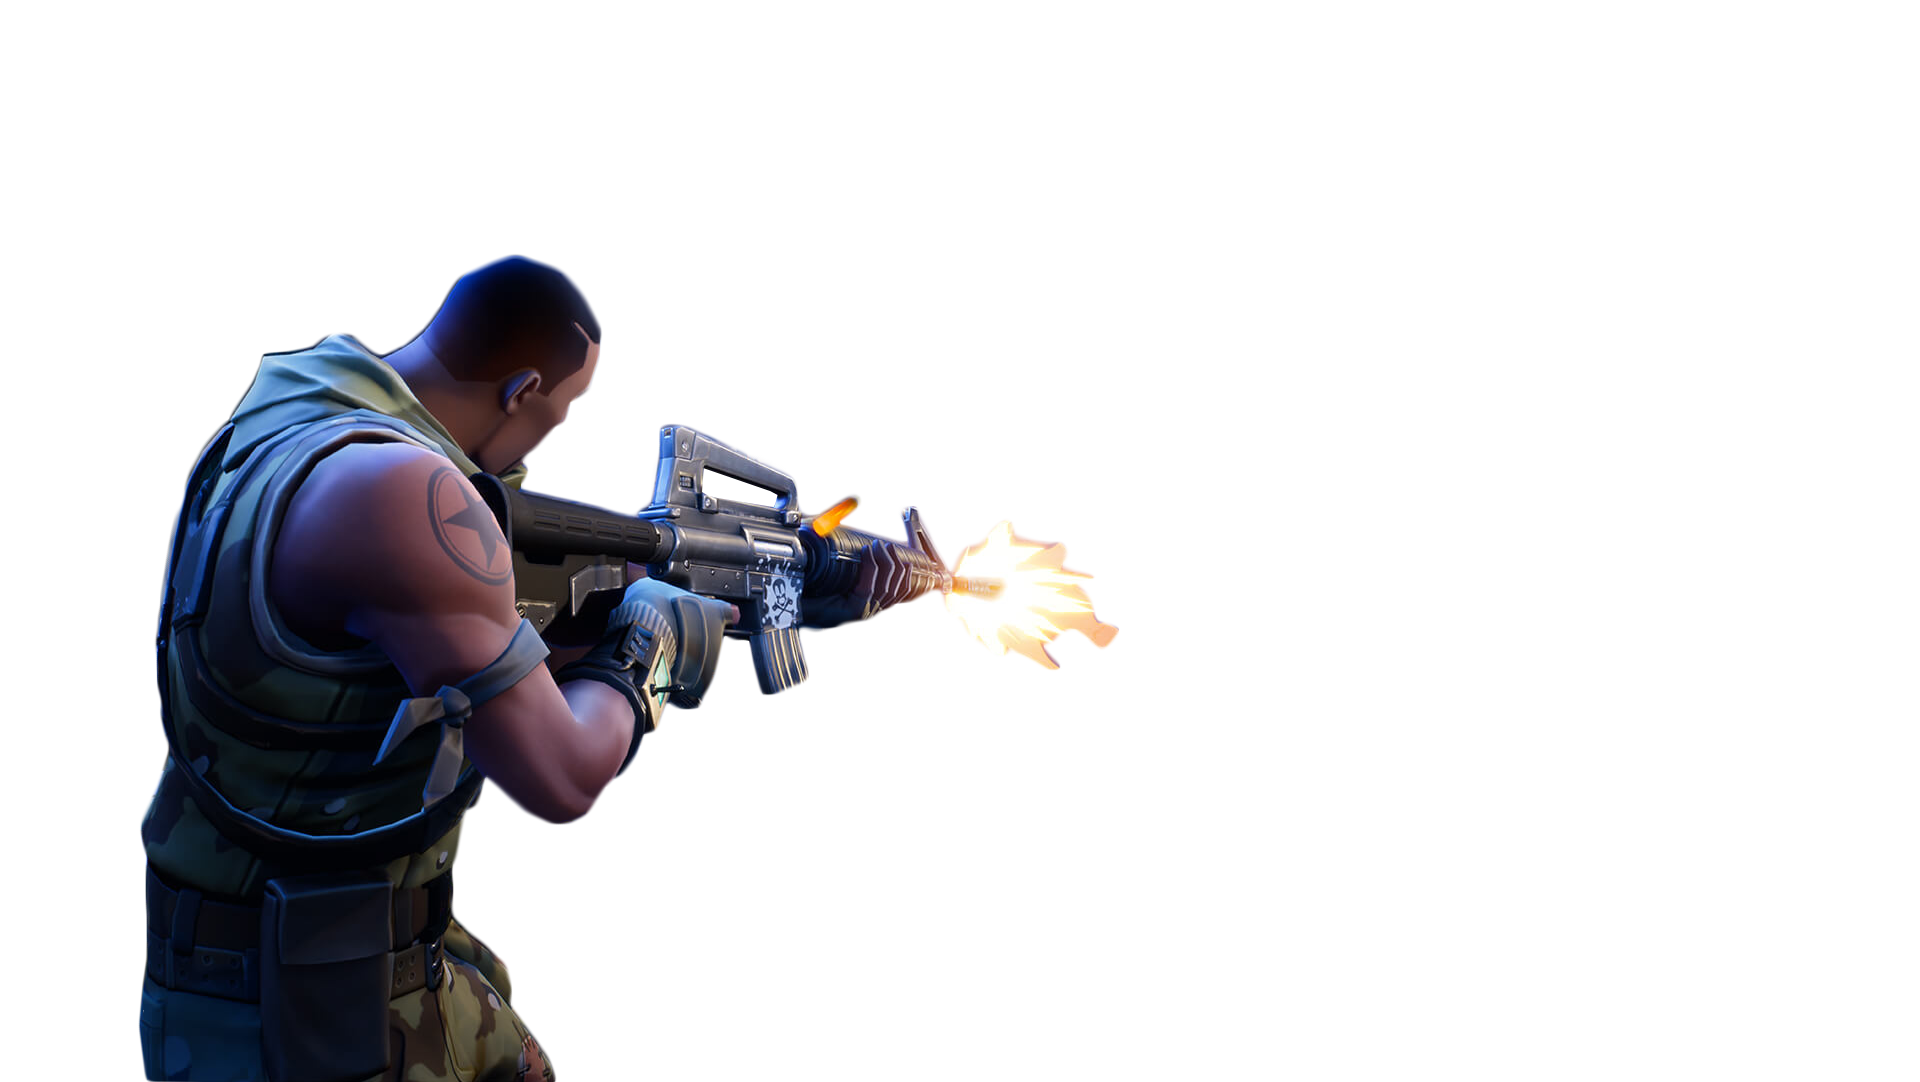 Person Shooting Fortnite Thumbnail Template Png Image Purepng